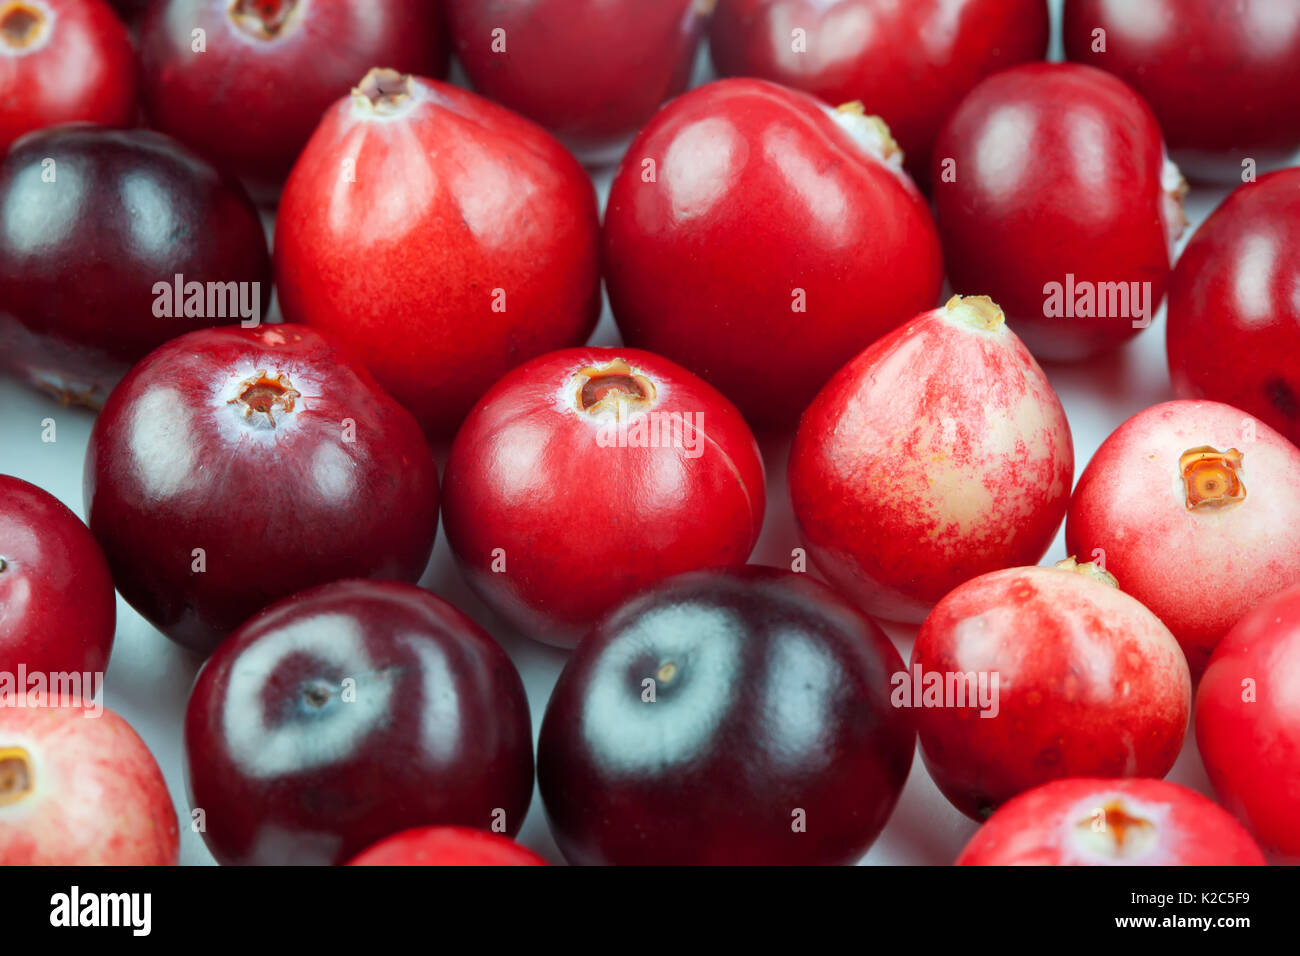 Wild cranberry color shape variation. Red ripe berries macro view. copy space. studio photo - Stock Image